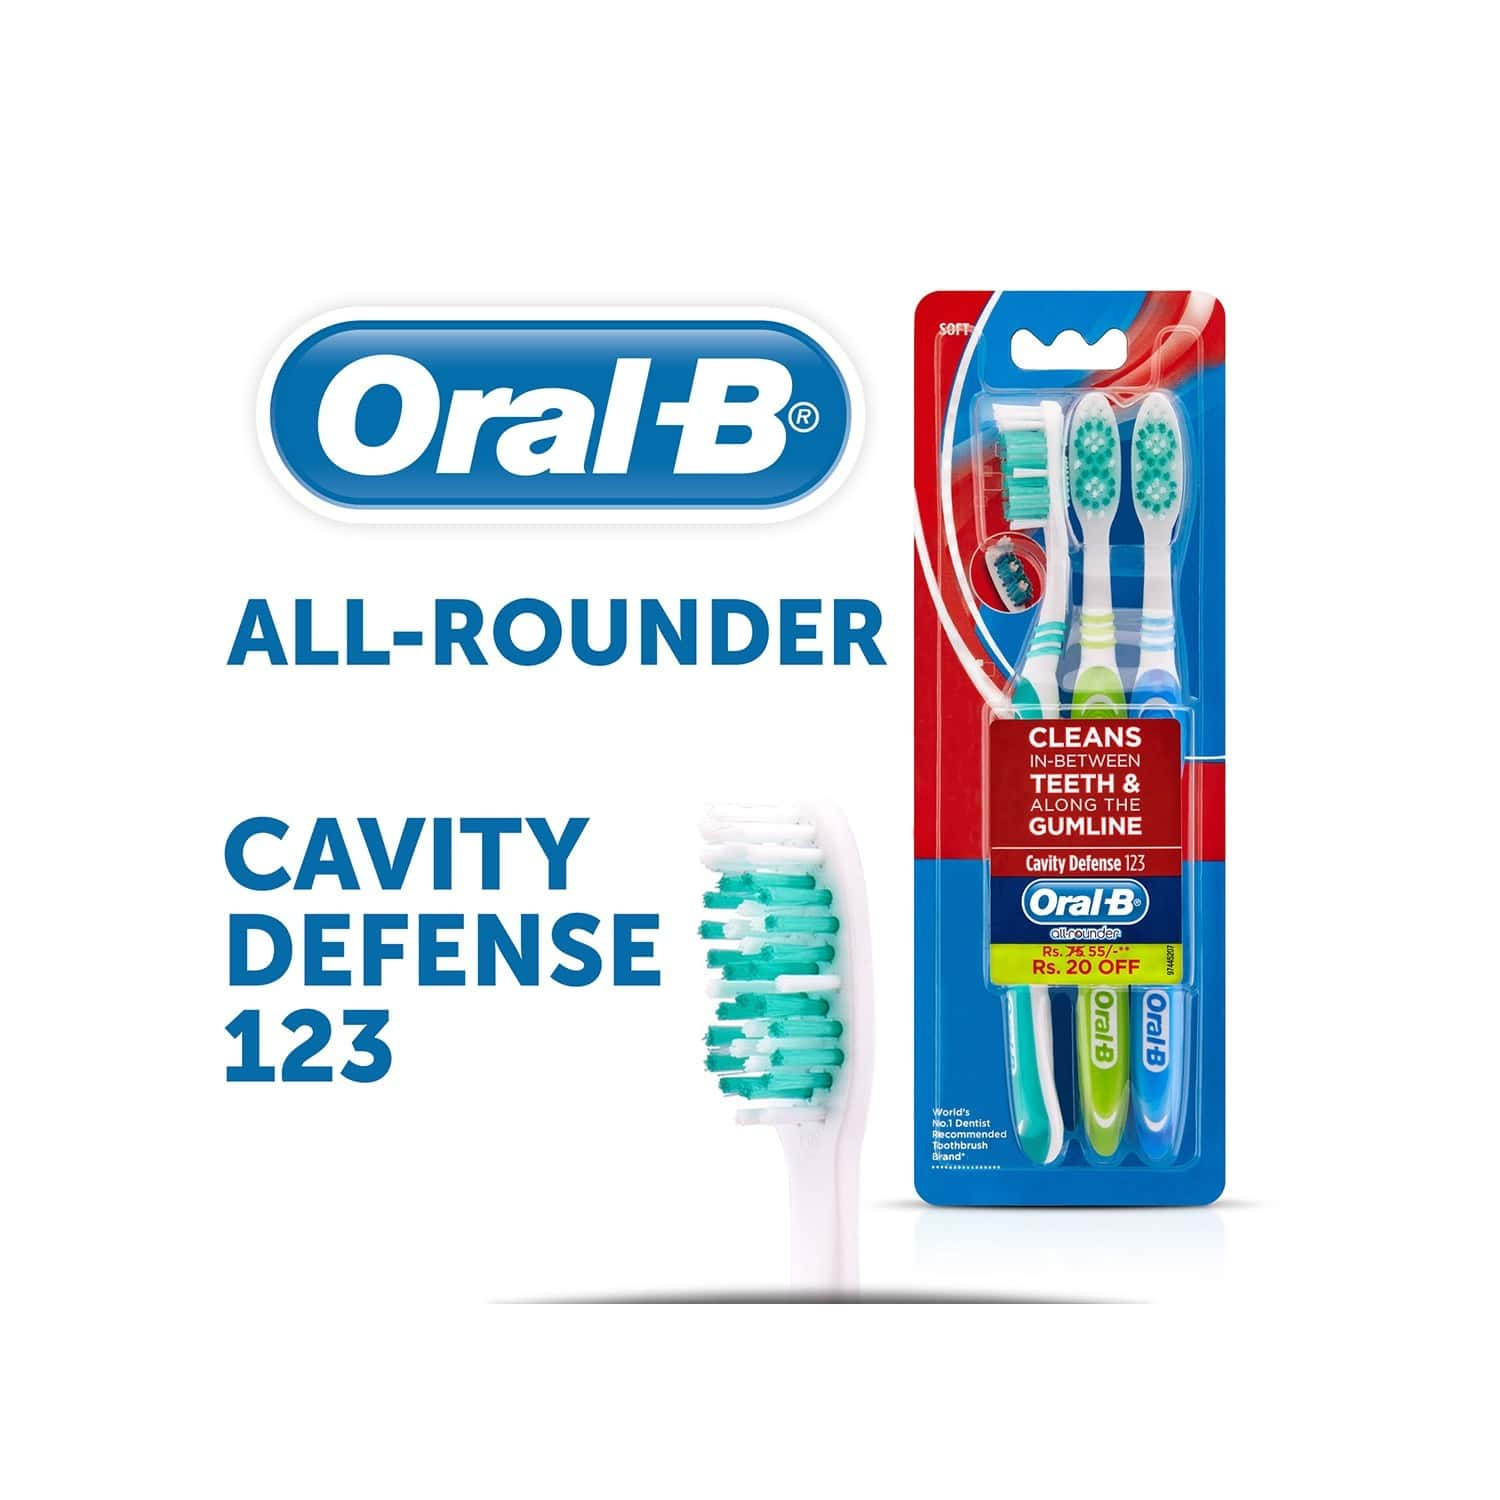 Oral-b All Rounder Cavity Defence 123 Toothbrush Soft 3 Piece Pack